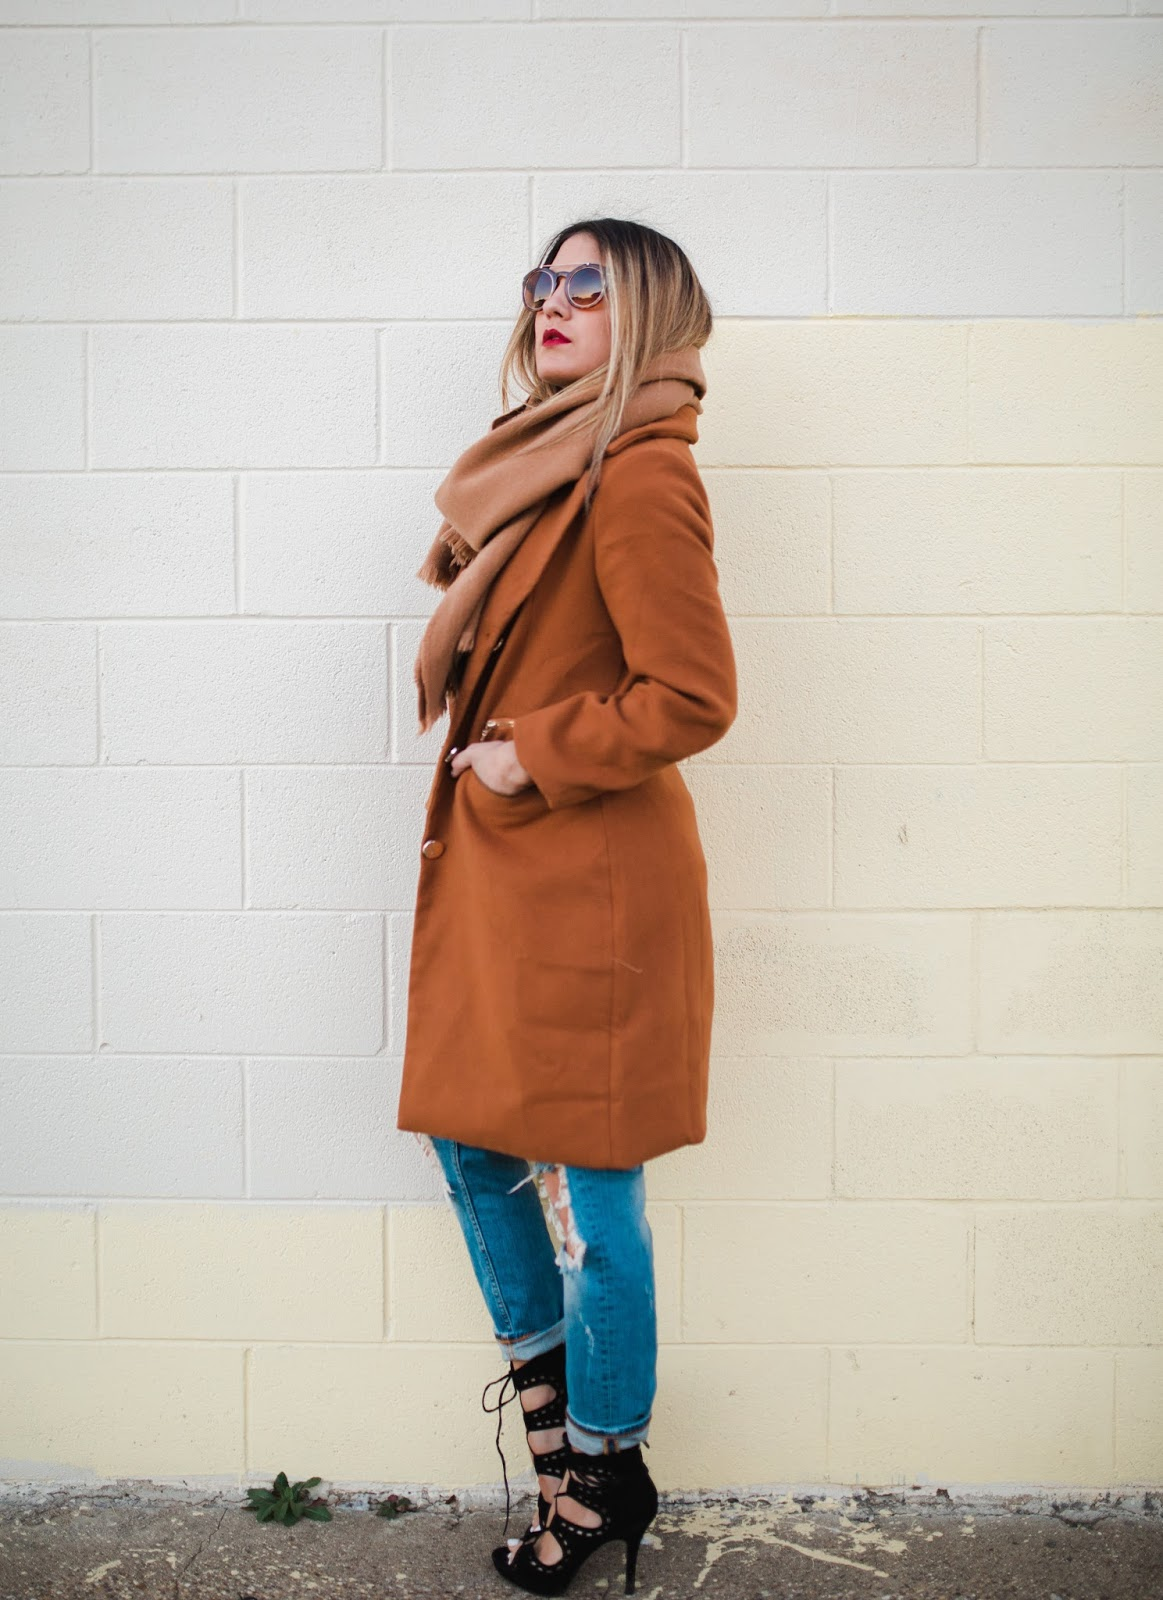 Sammy Dress Coat - My Cup of Chic